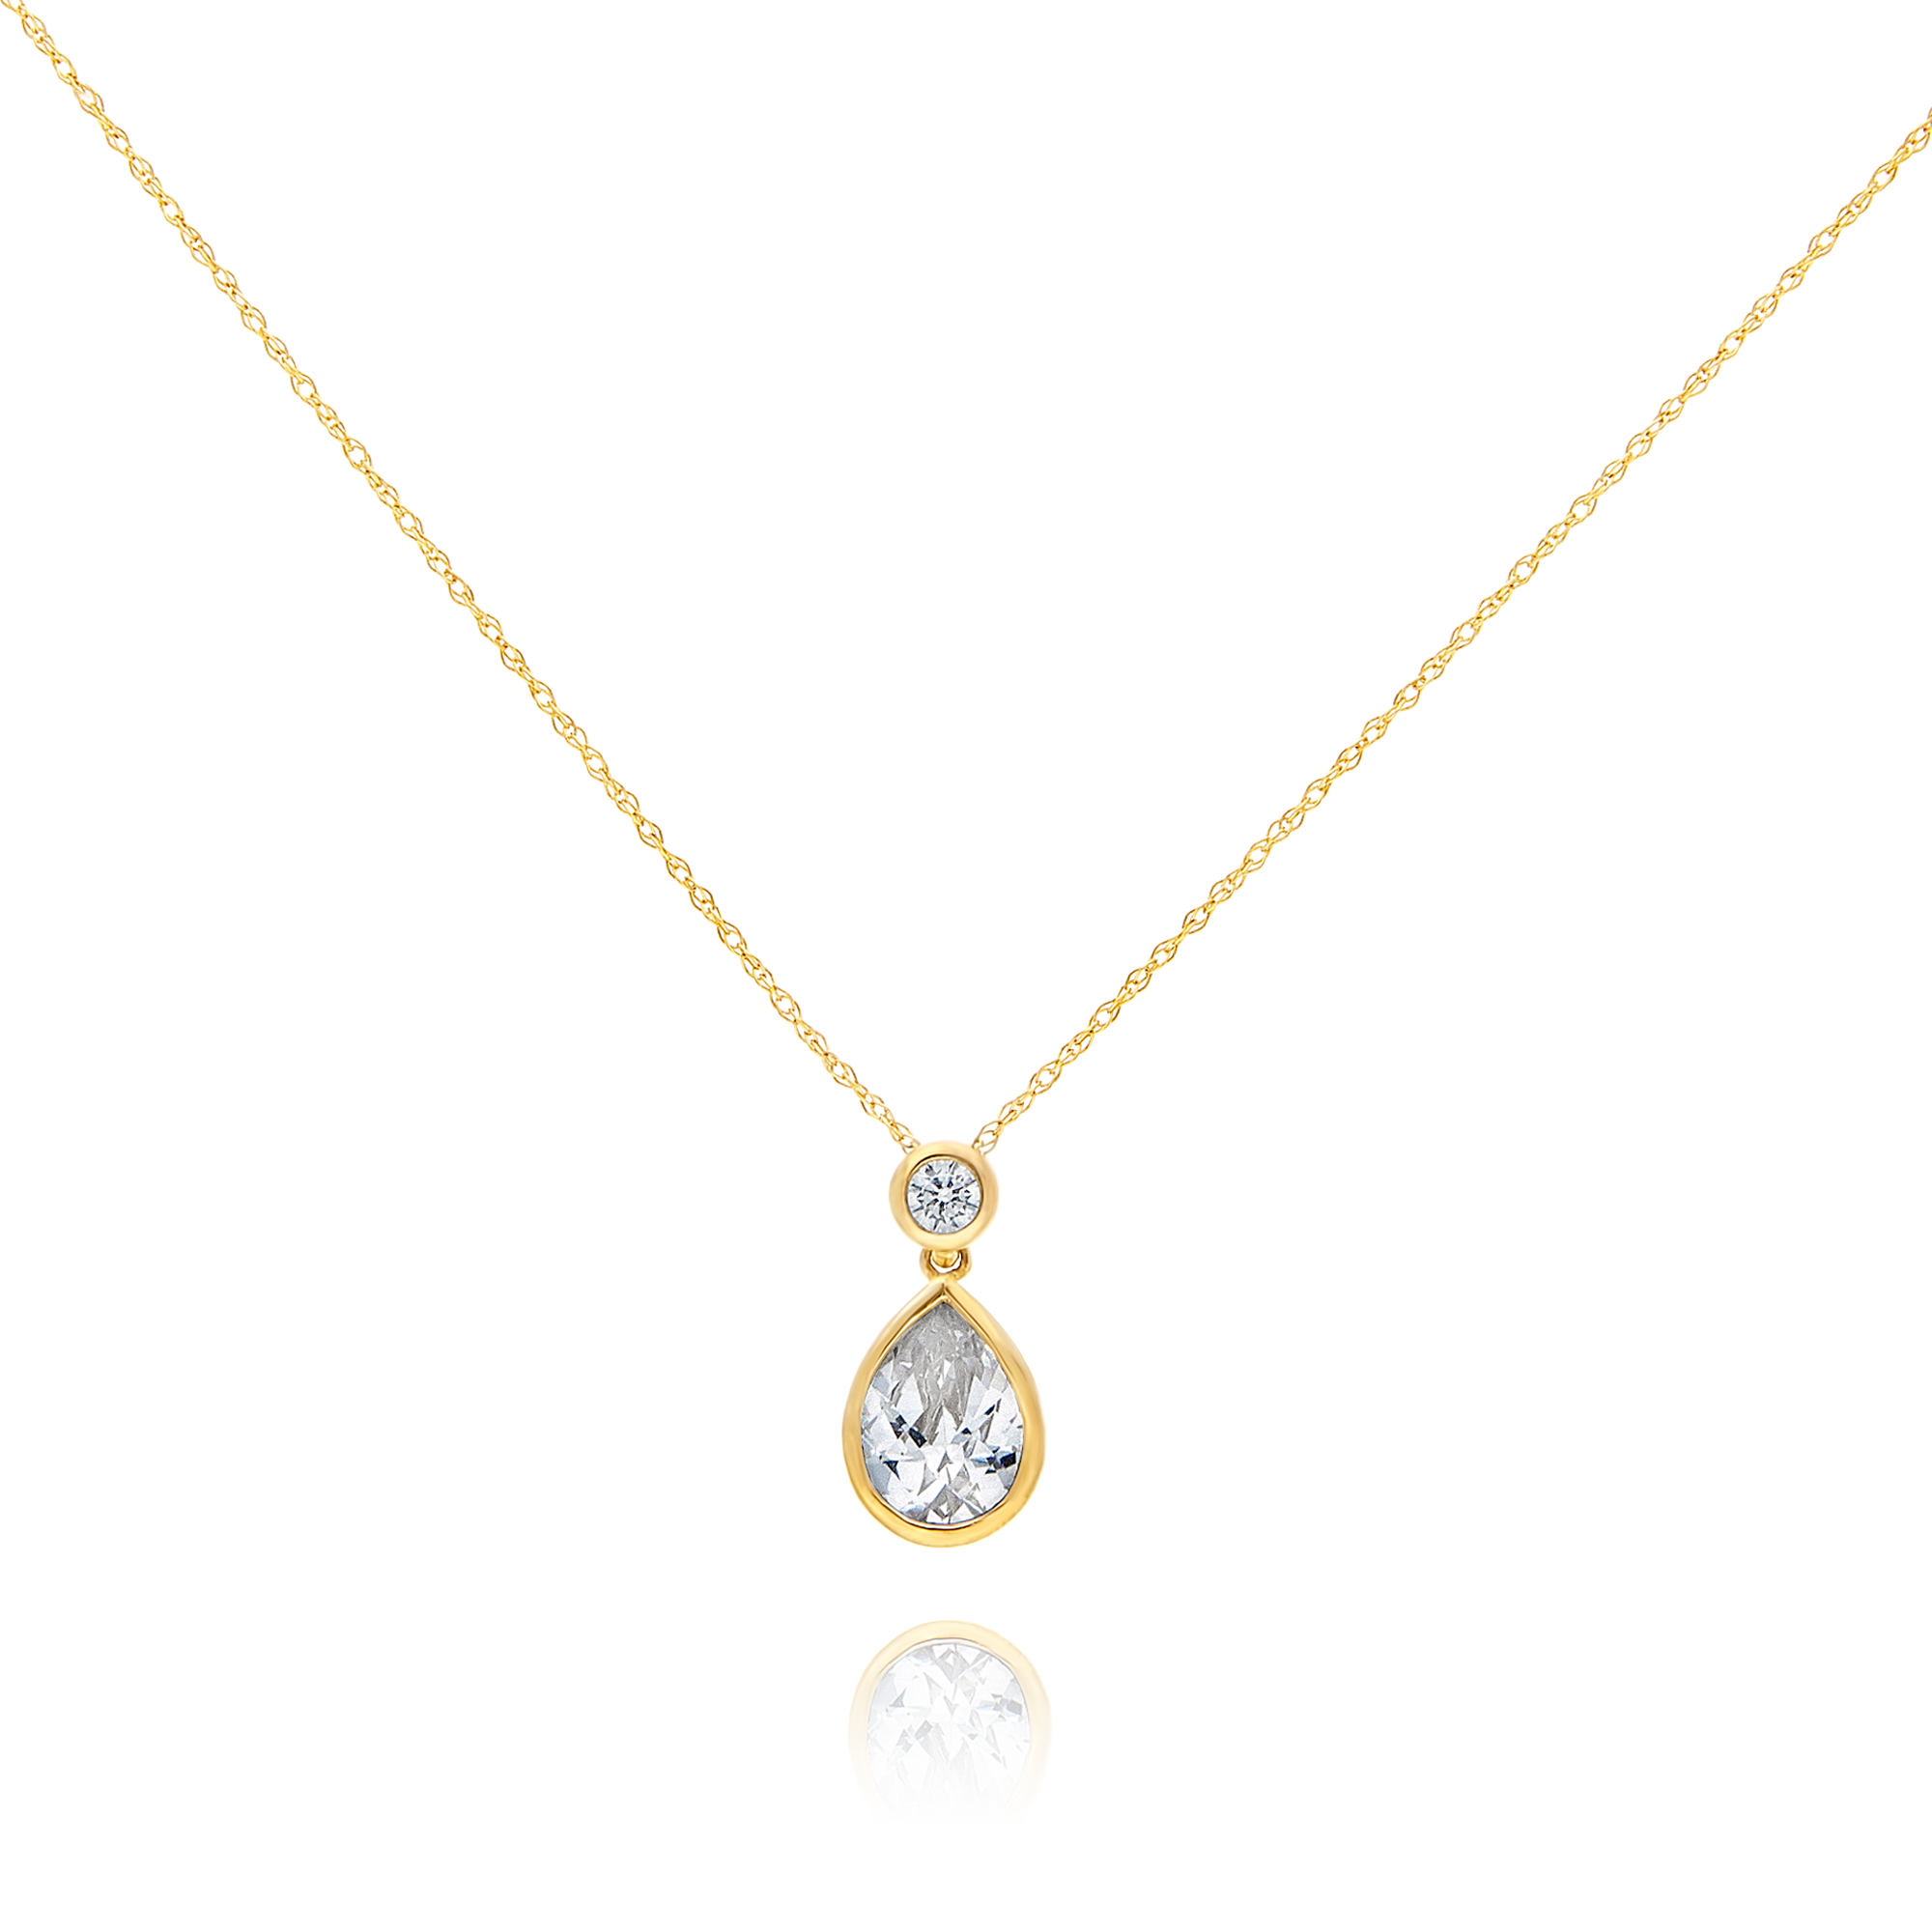 9ct Gold Pear Shaped CZ Pendant